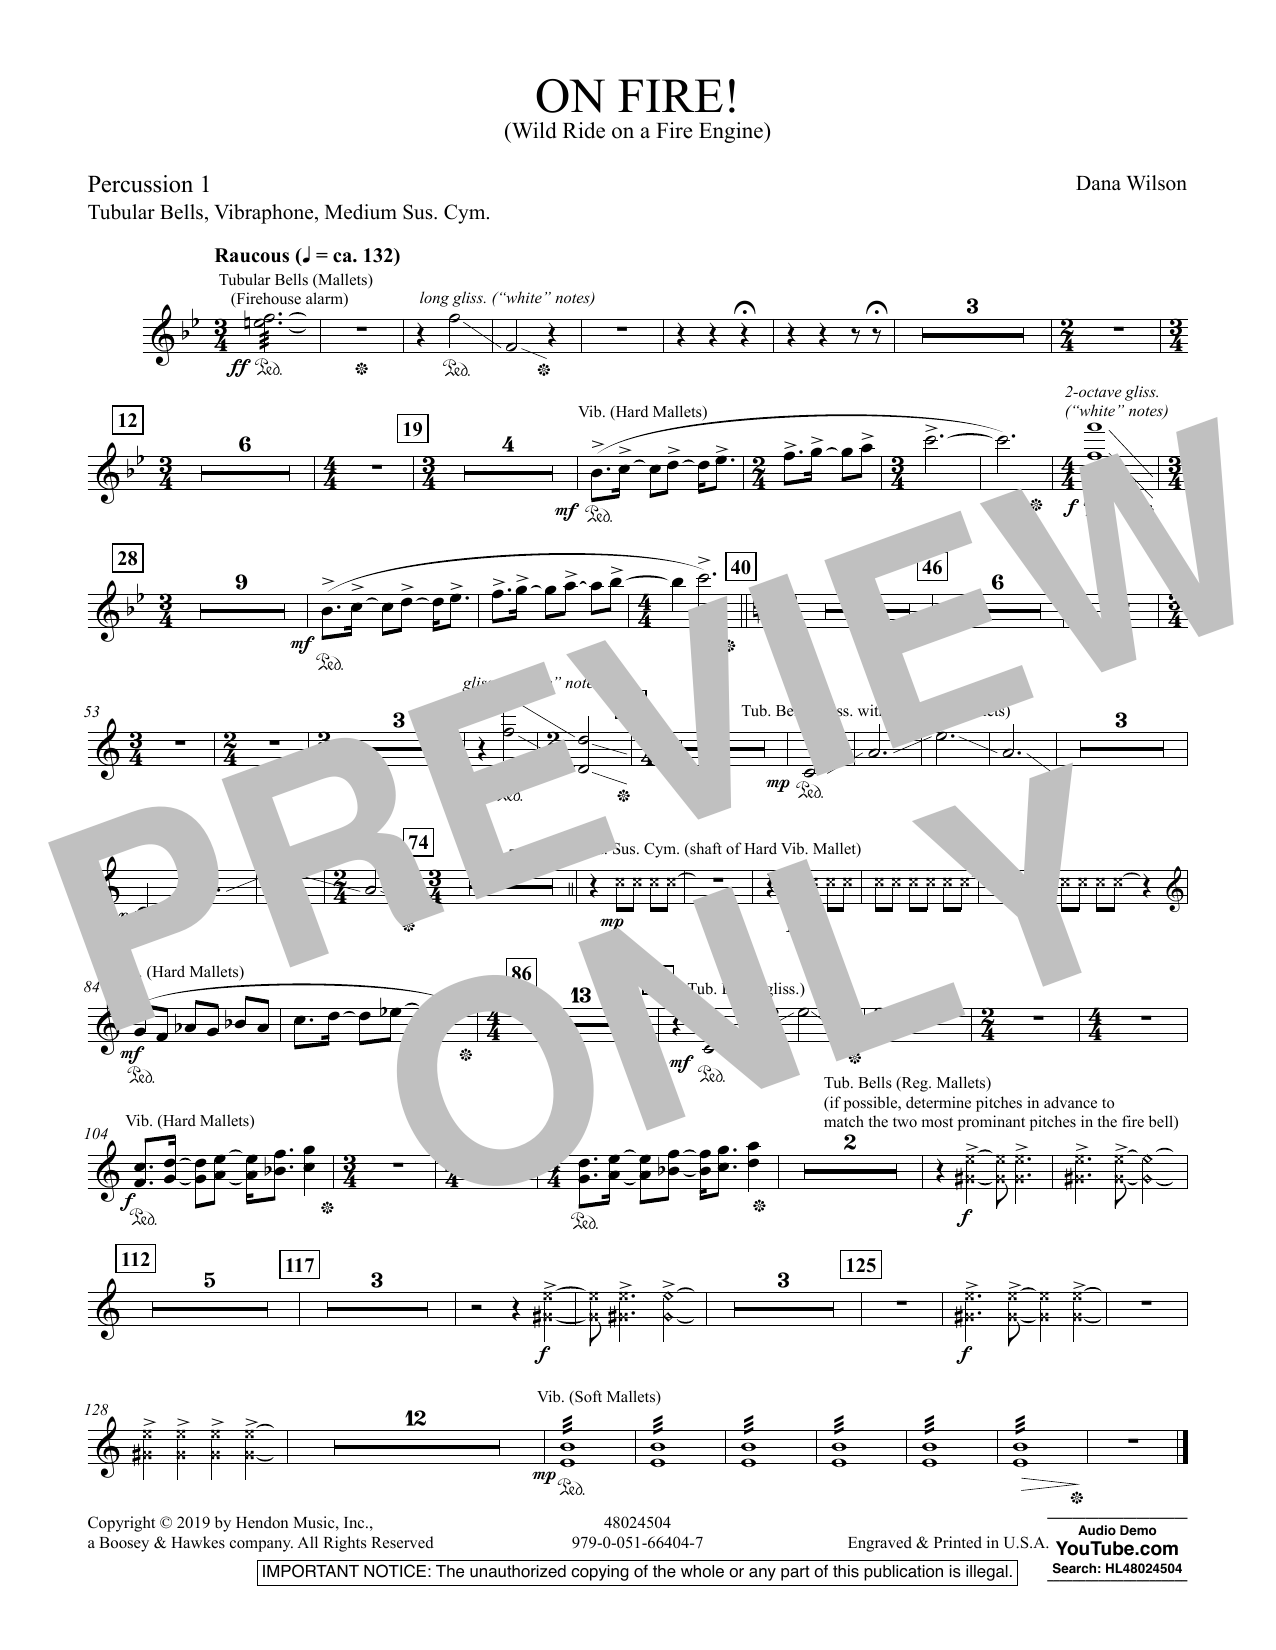 On Fire! (Wild Ride on a Fire Engine) - Percussion 1 (Concert Band)